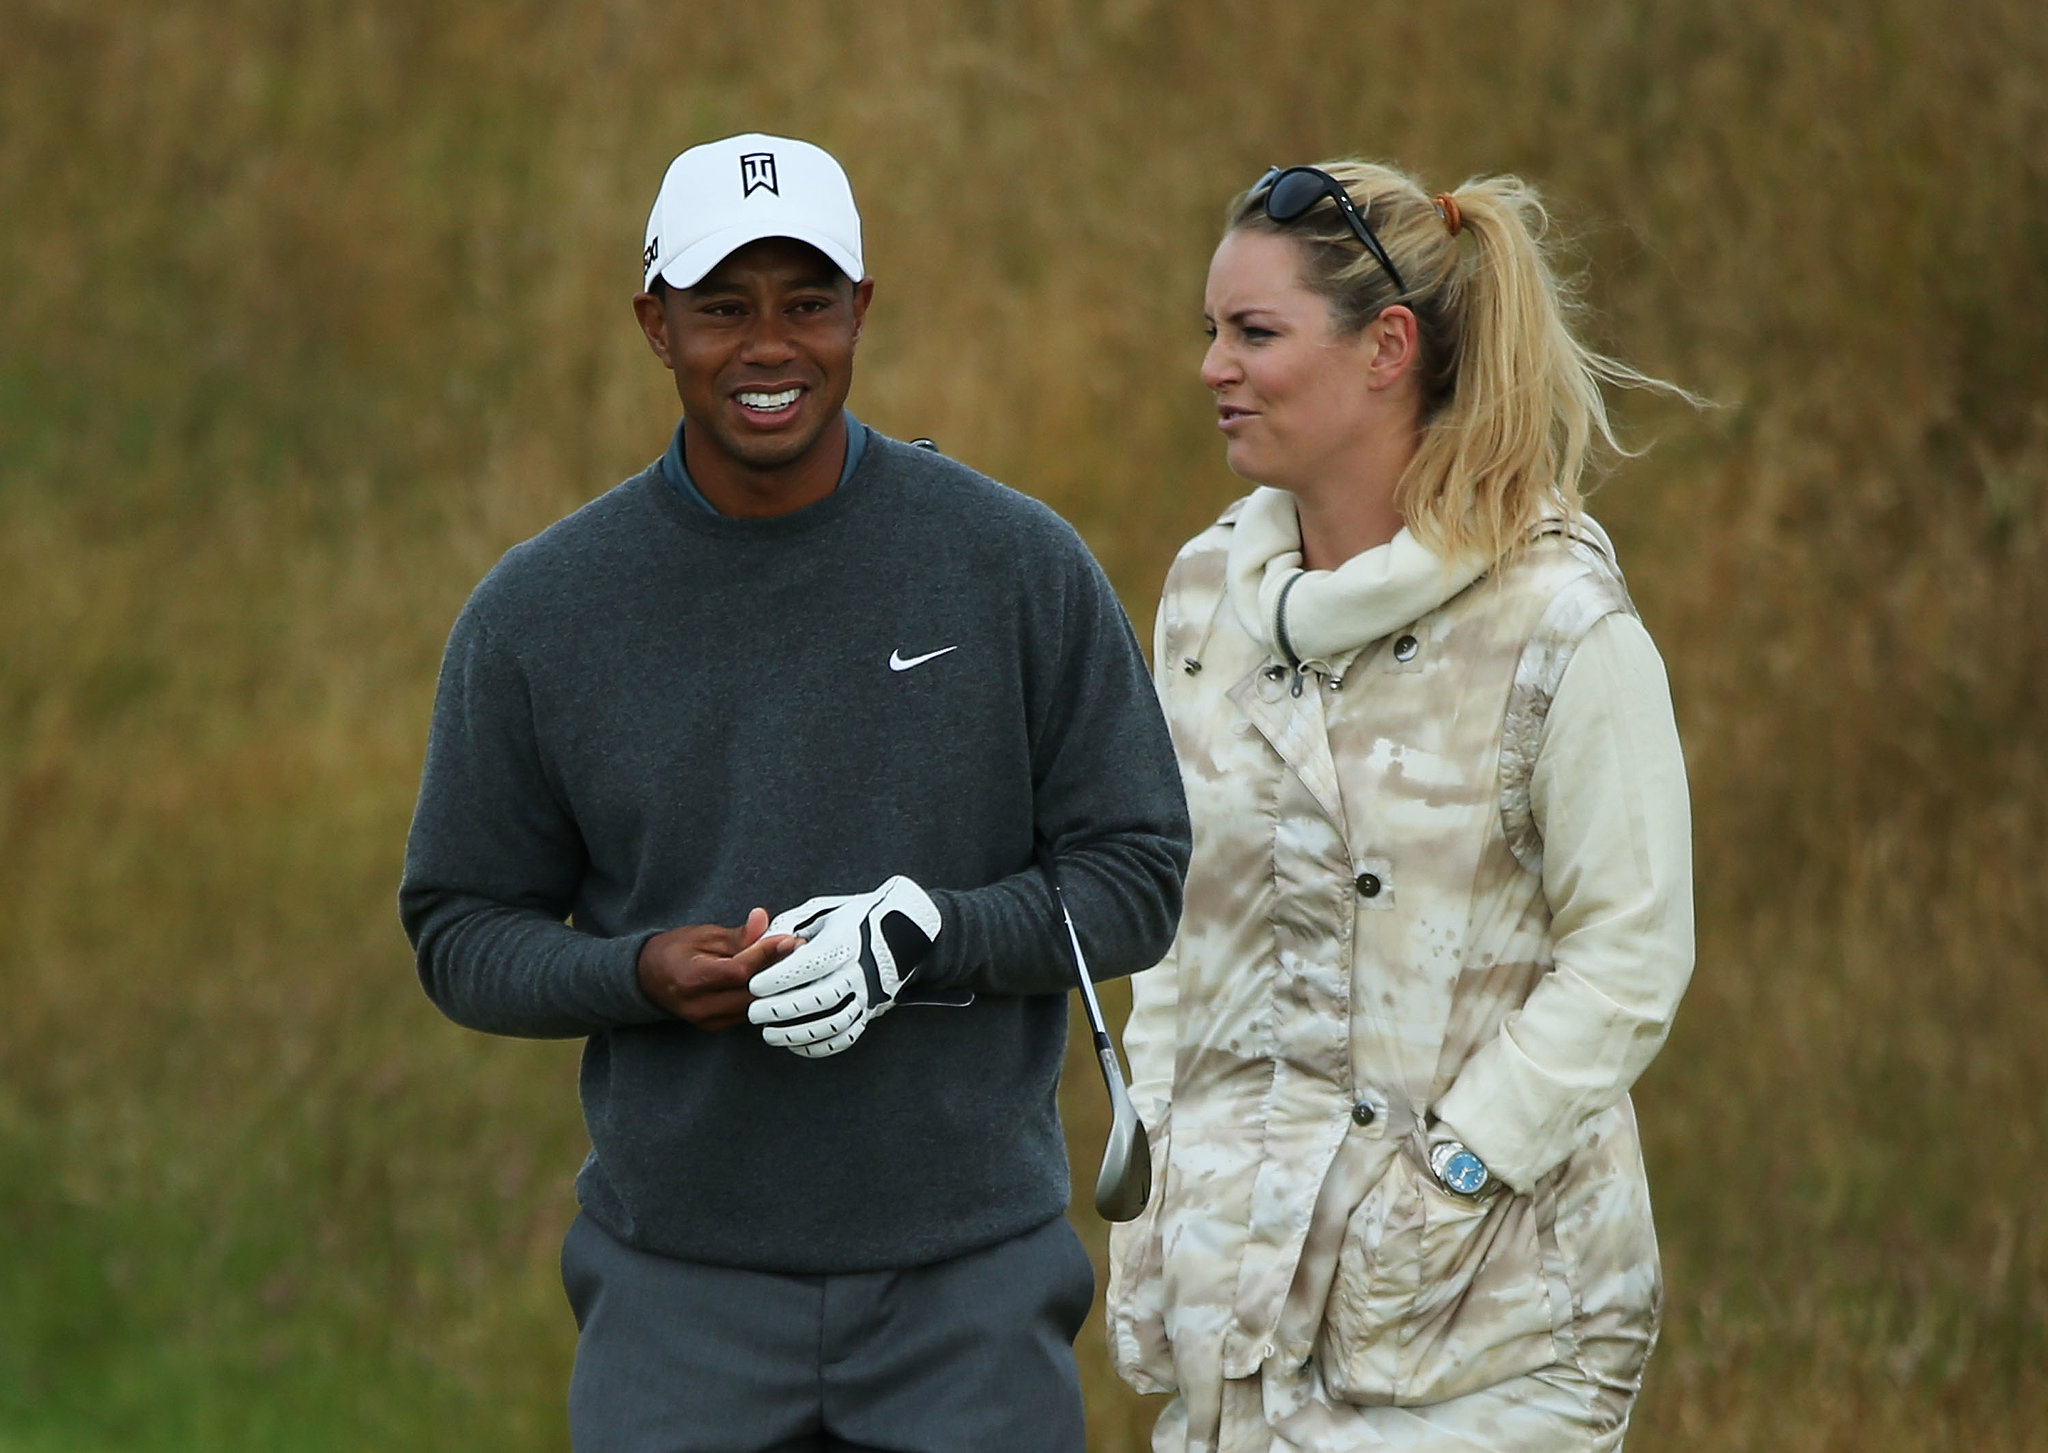 Tiger Woods and Lindsey Vonn spent time together ahead of the 142nd British Open Championship in Gullane, Scotland.